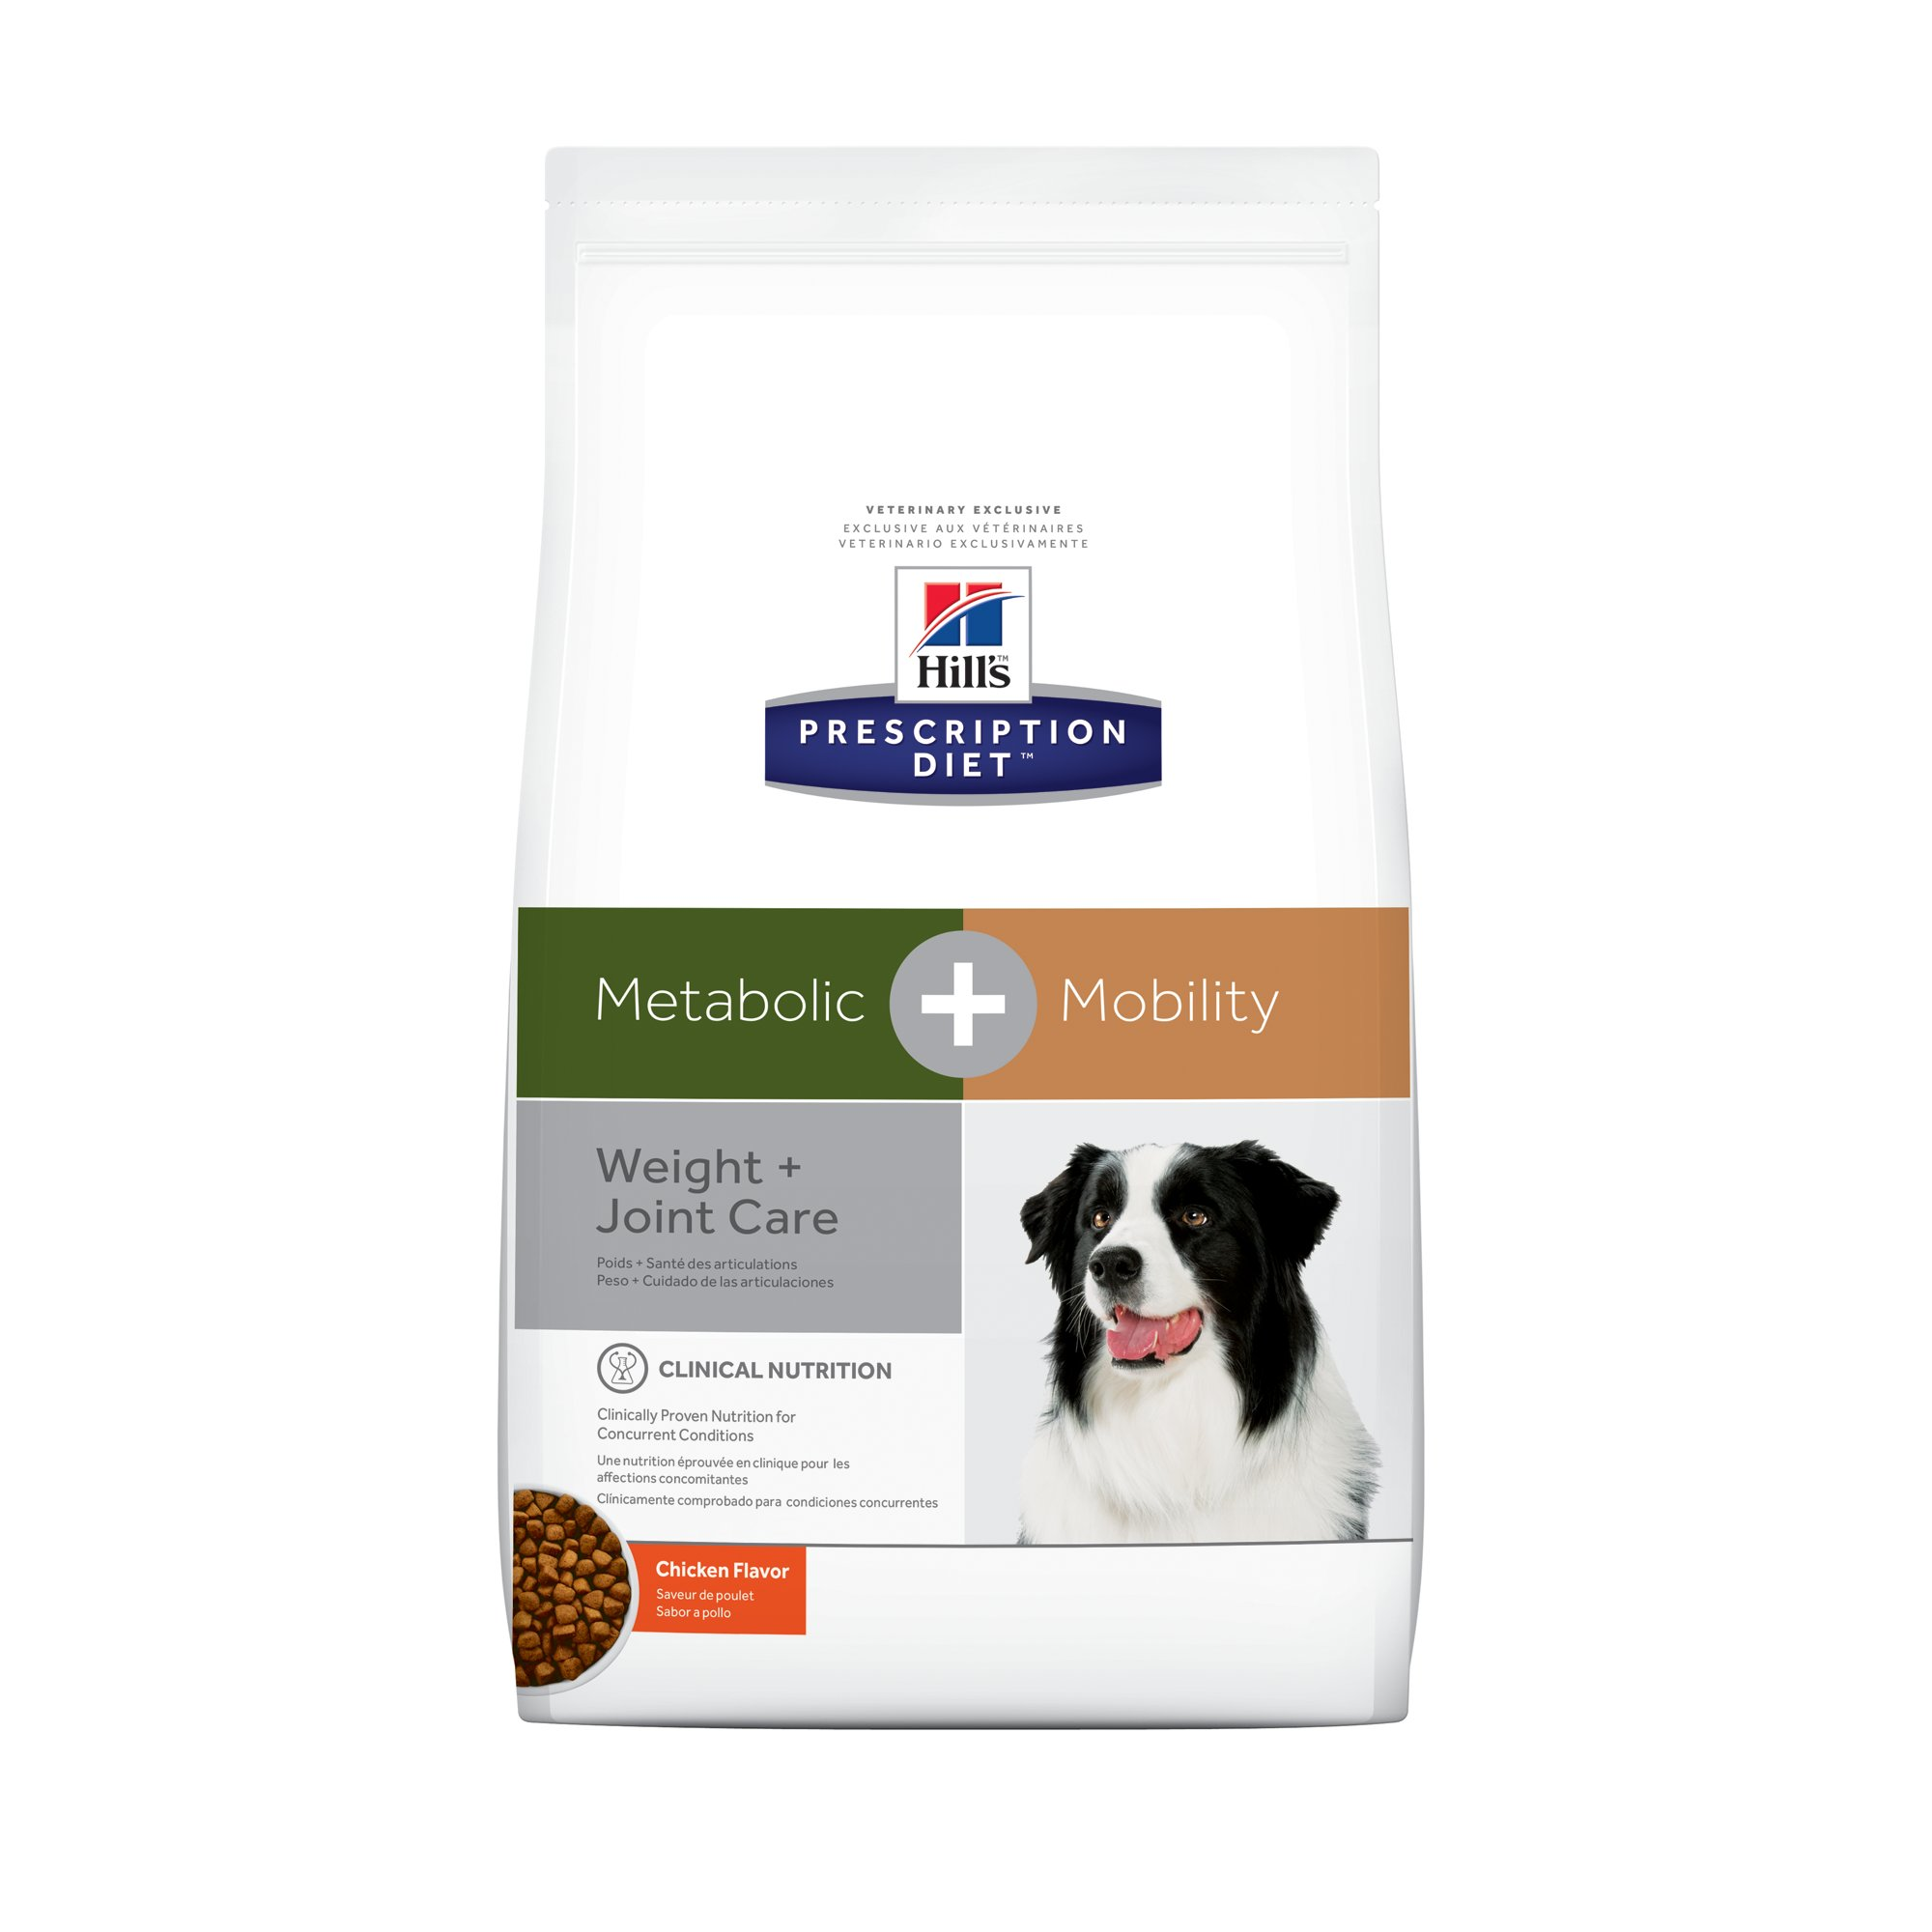 Metabolic And Mobility Dog Food